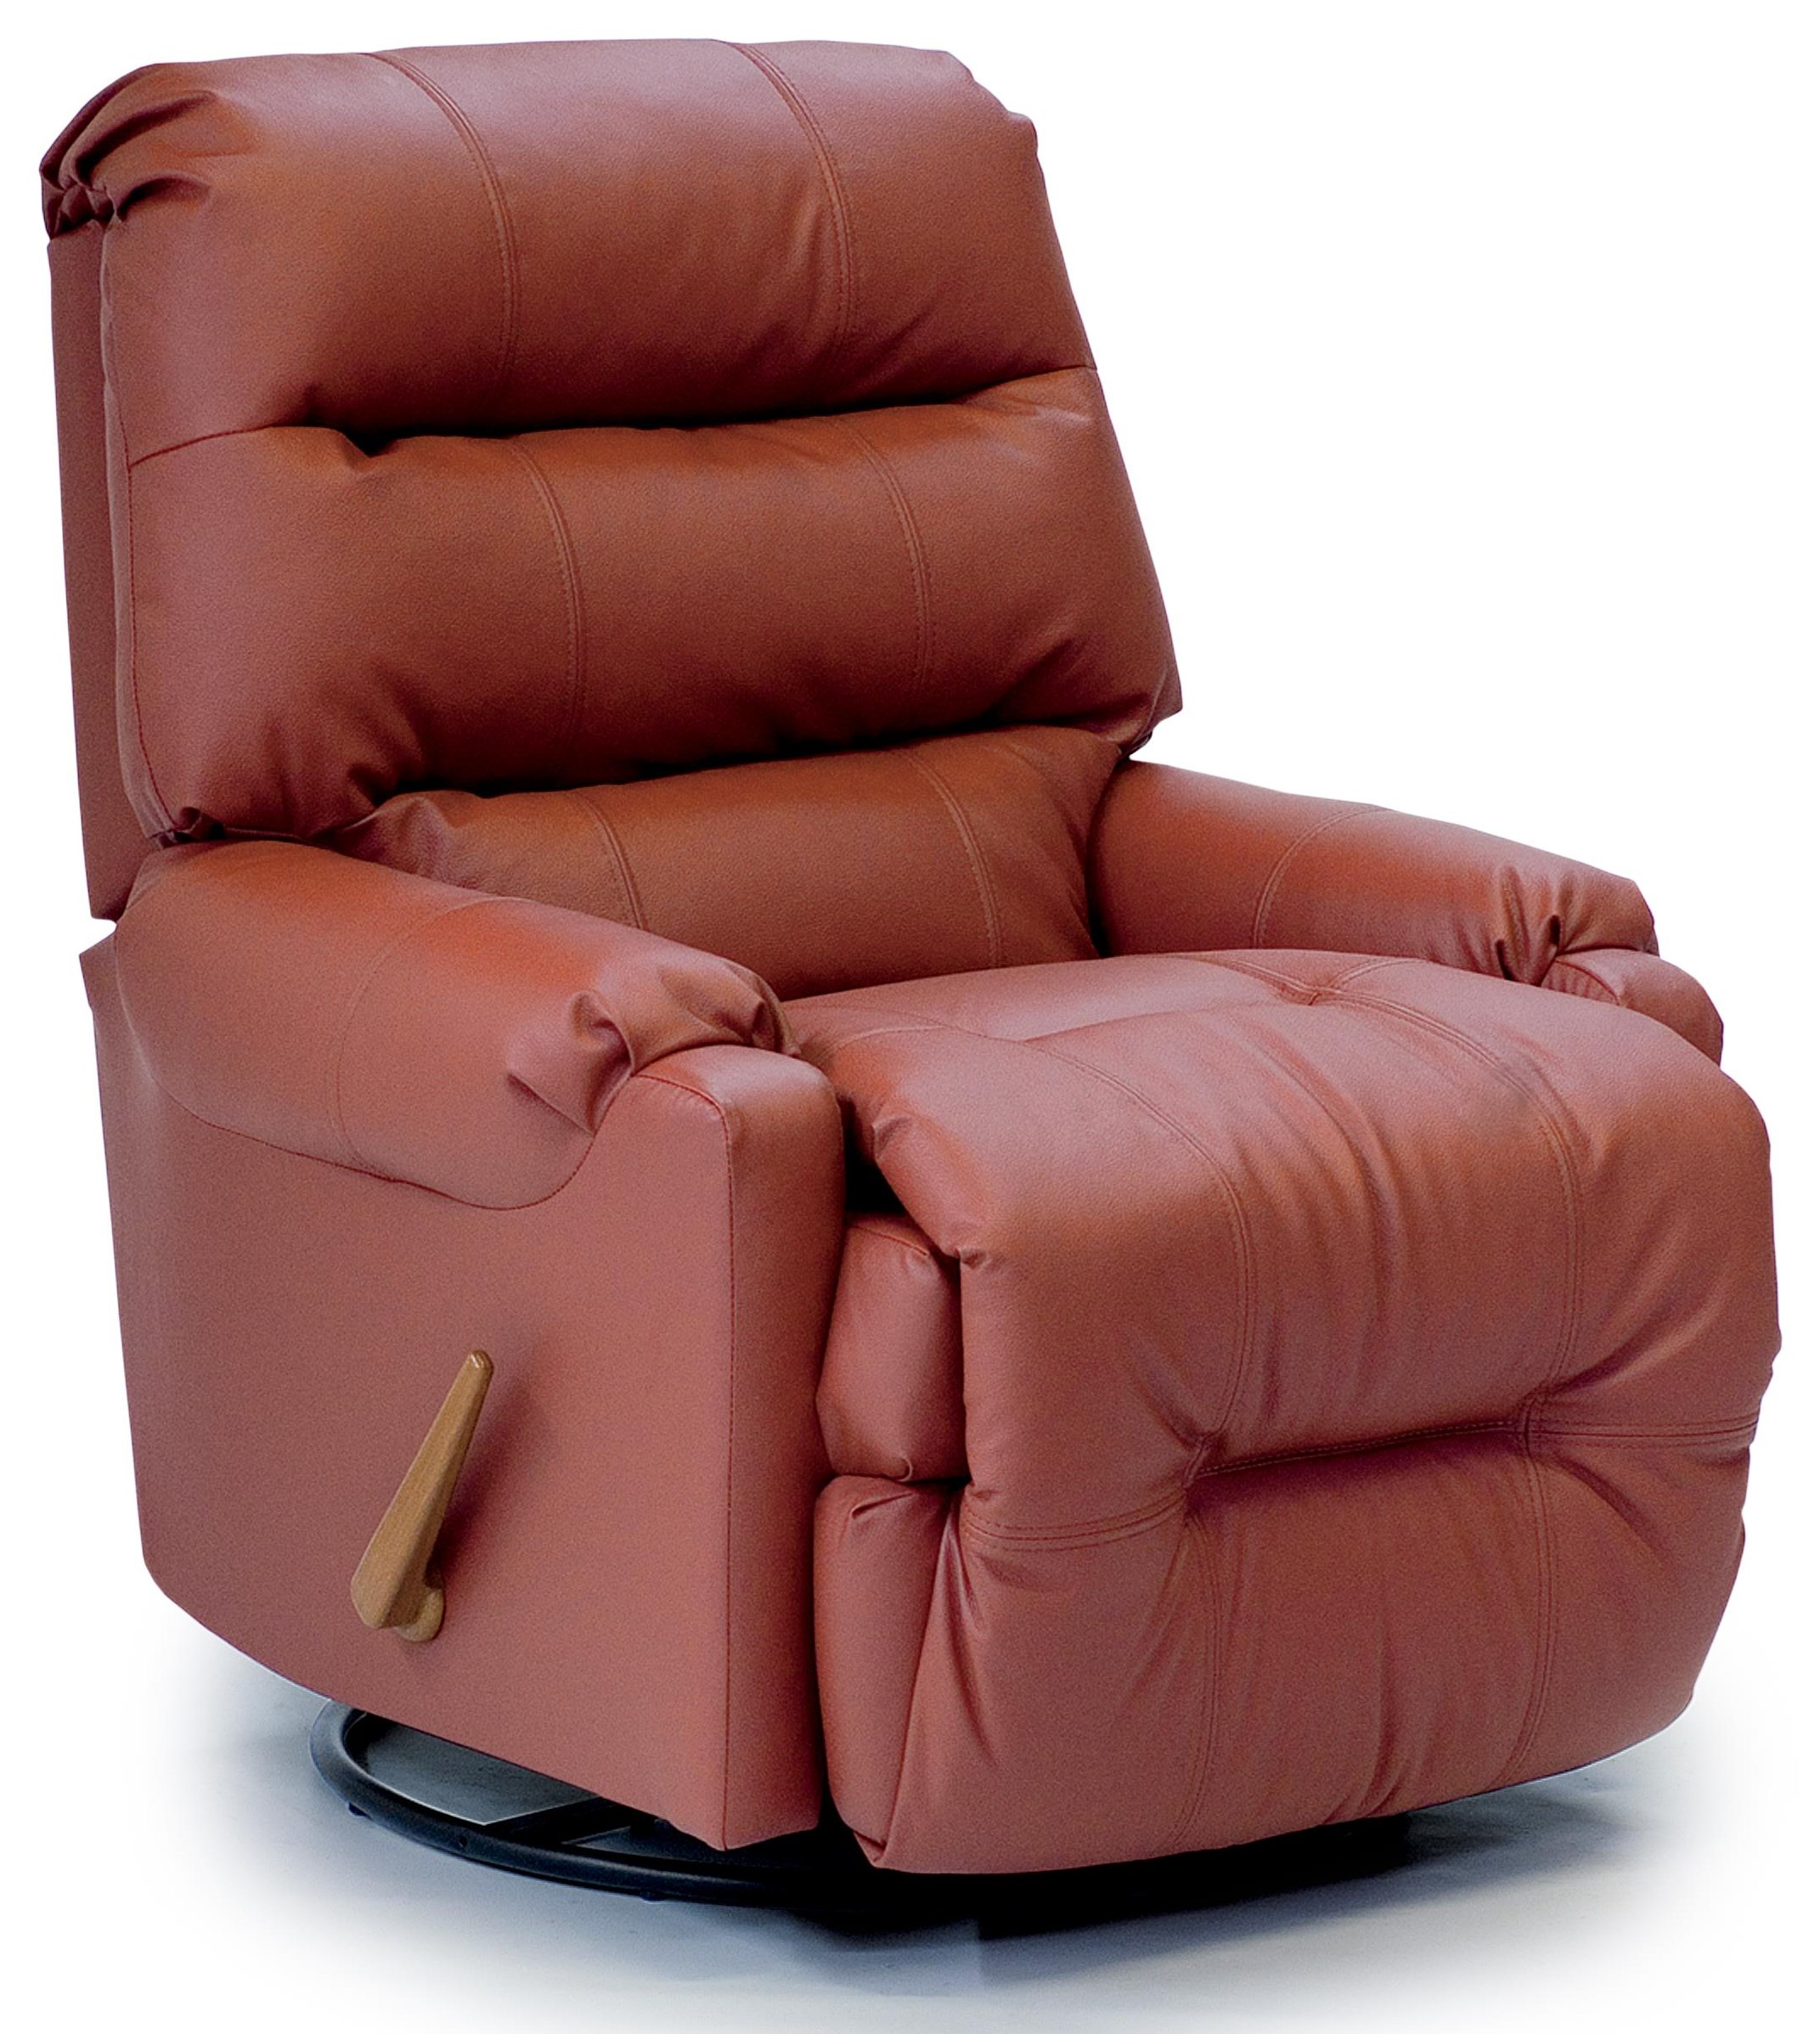 Petite Recliners Sedgefield Pwr Lift Recliner w/ Pwr Headrest by Best Home Furnishings at Saugerties Furniture Mart